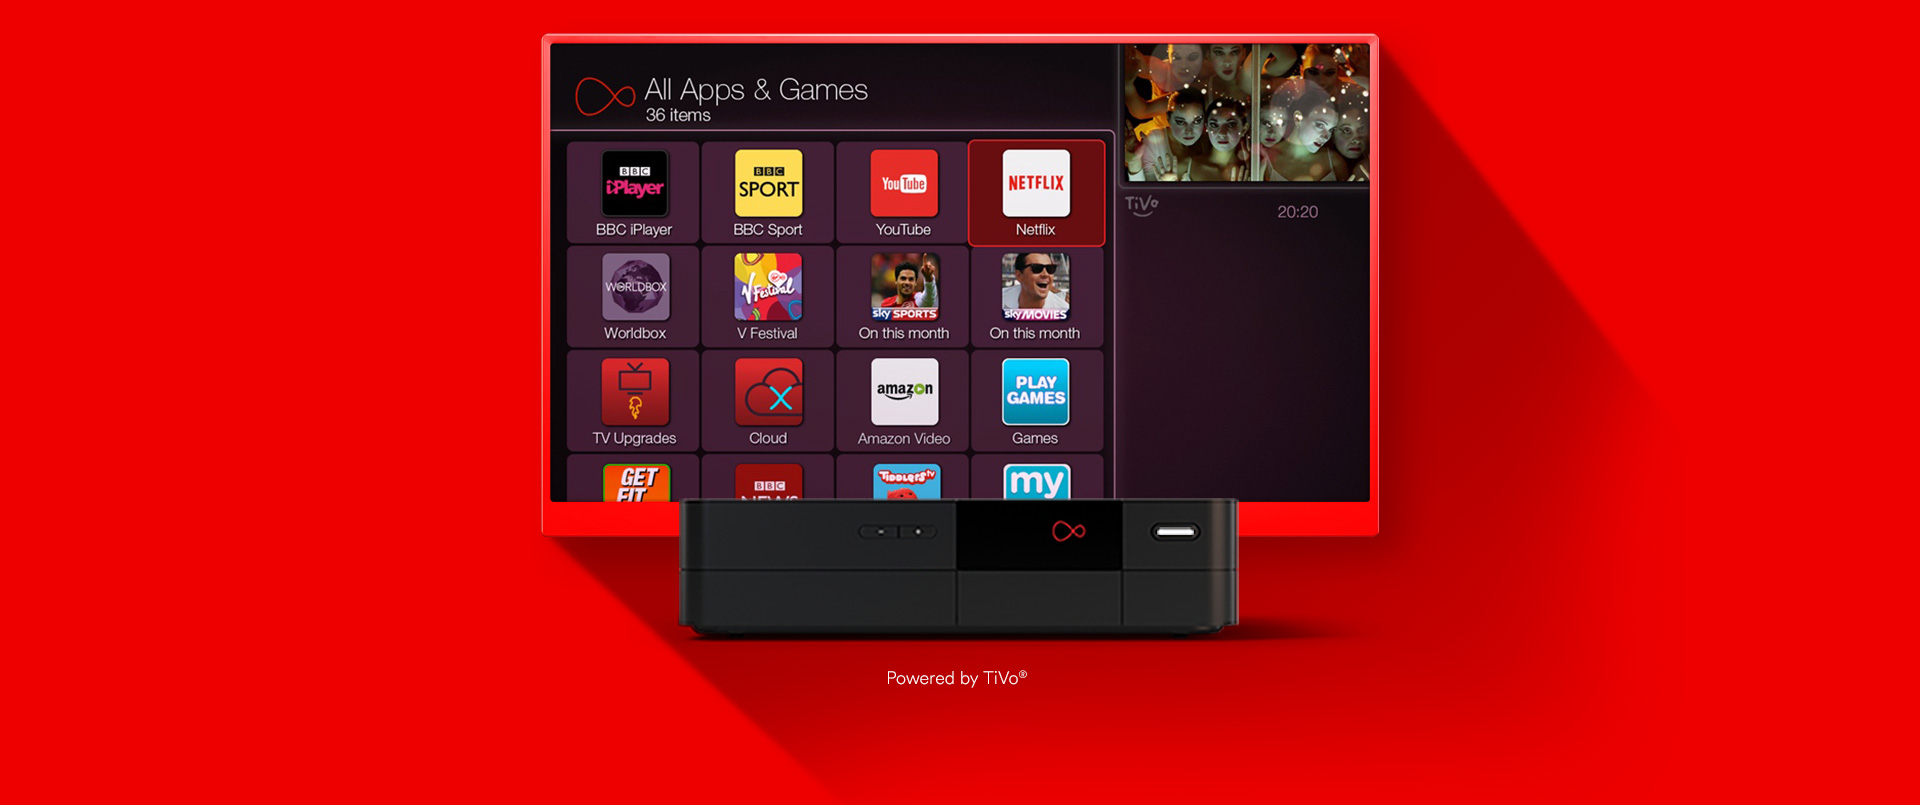 virgin tv netflix app